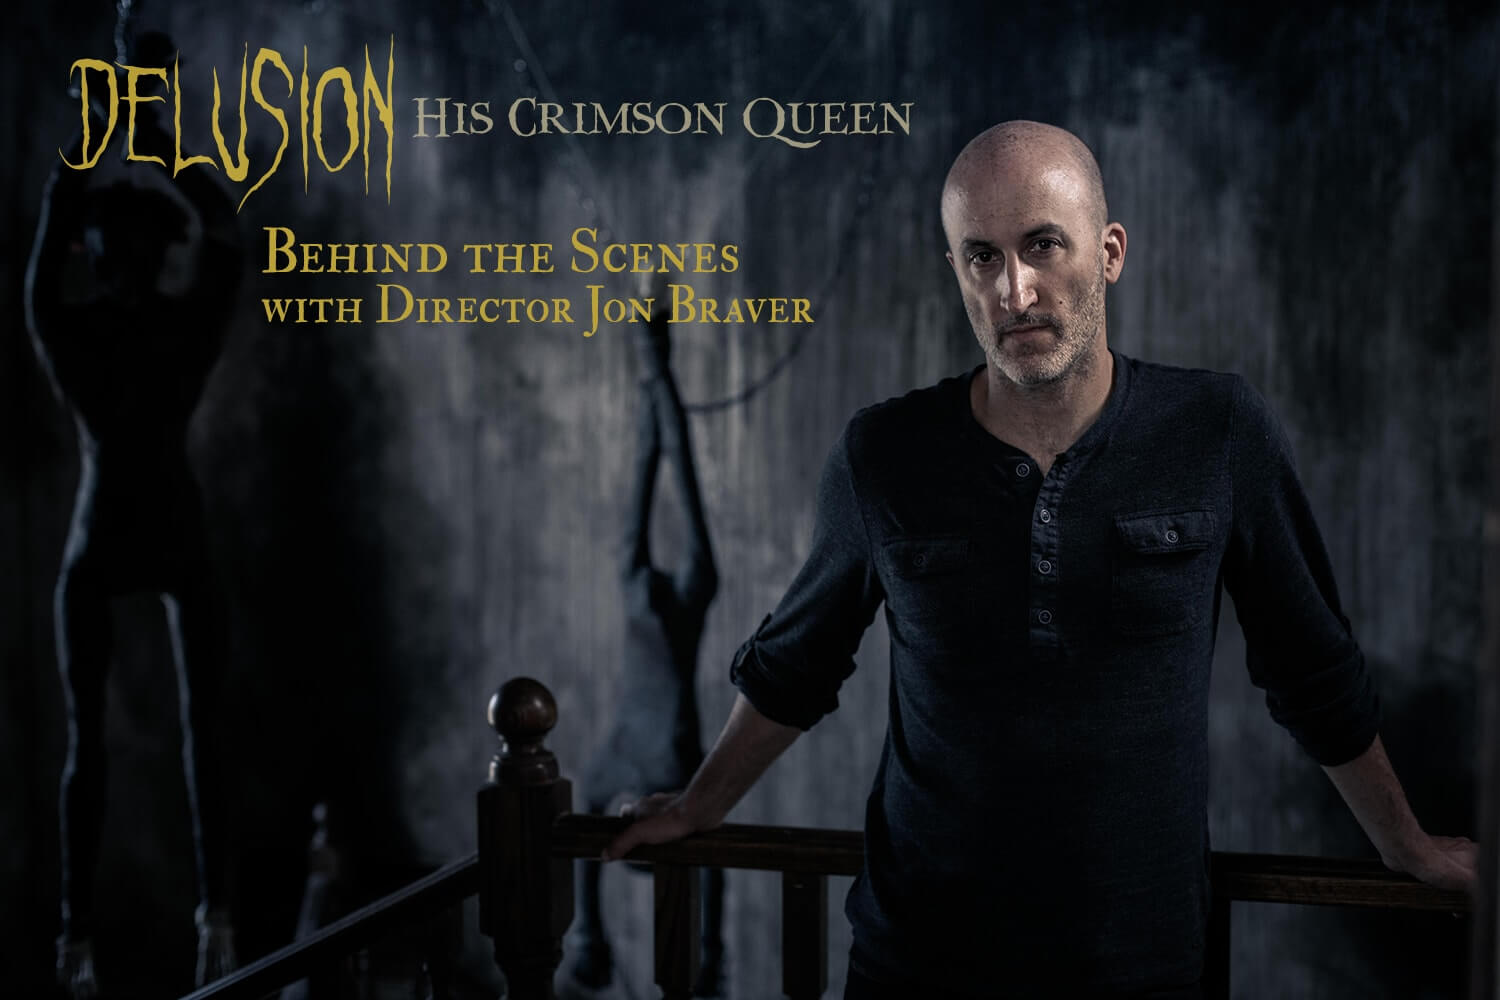 delusion his crimson queen 1 - Win a Backstage Tour of the Hit Show Delusion